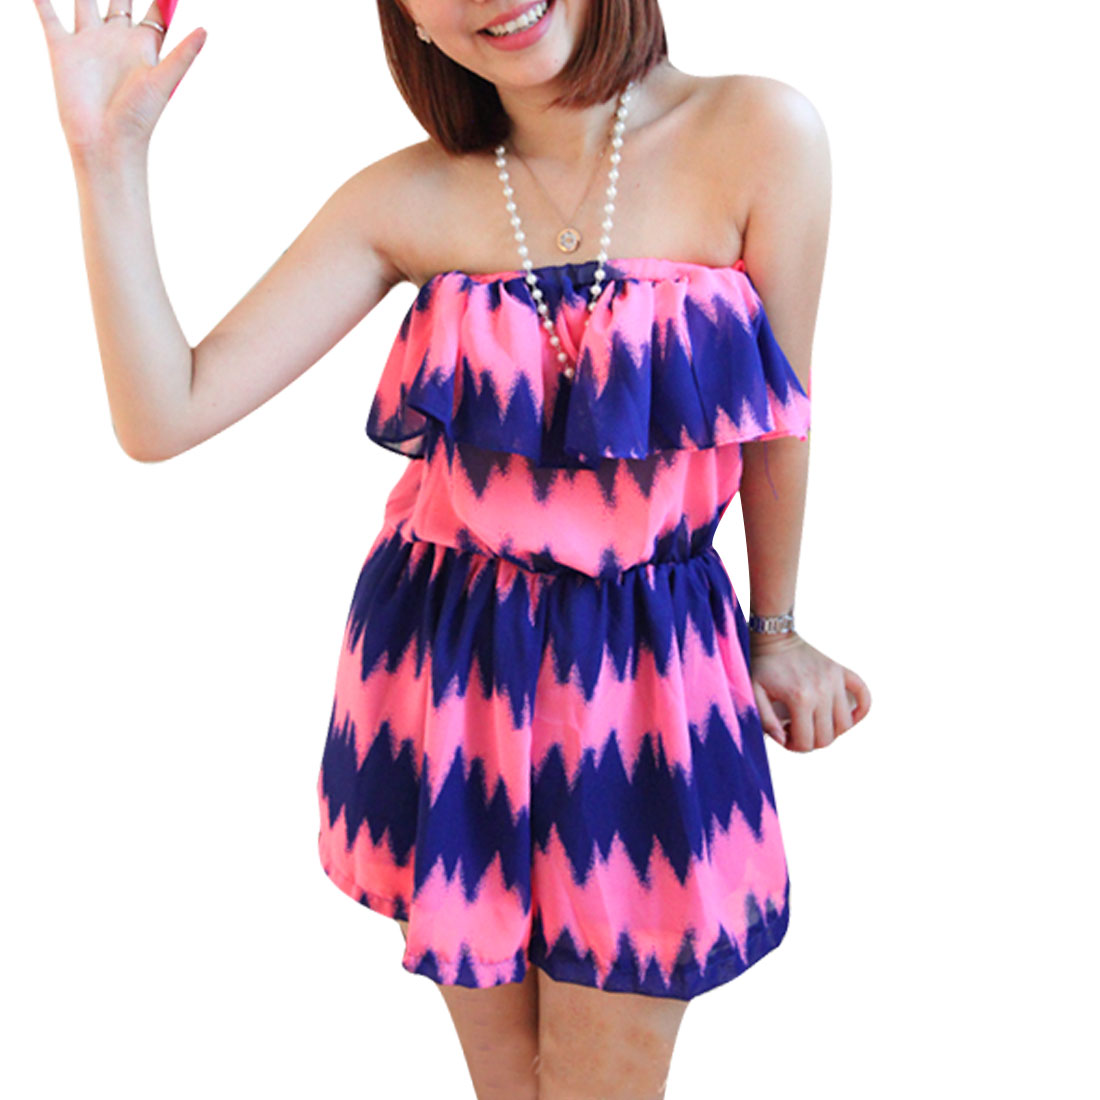 Ladies Slim Fit Strapless Style Summer Fashion Romper Blue Fuchsia XS